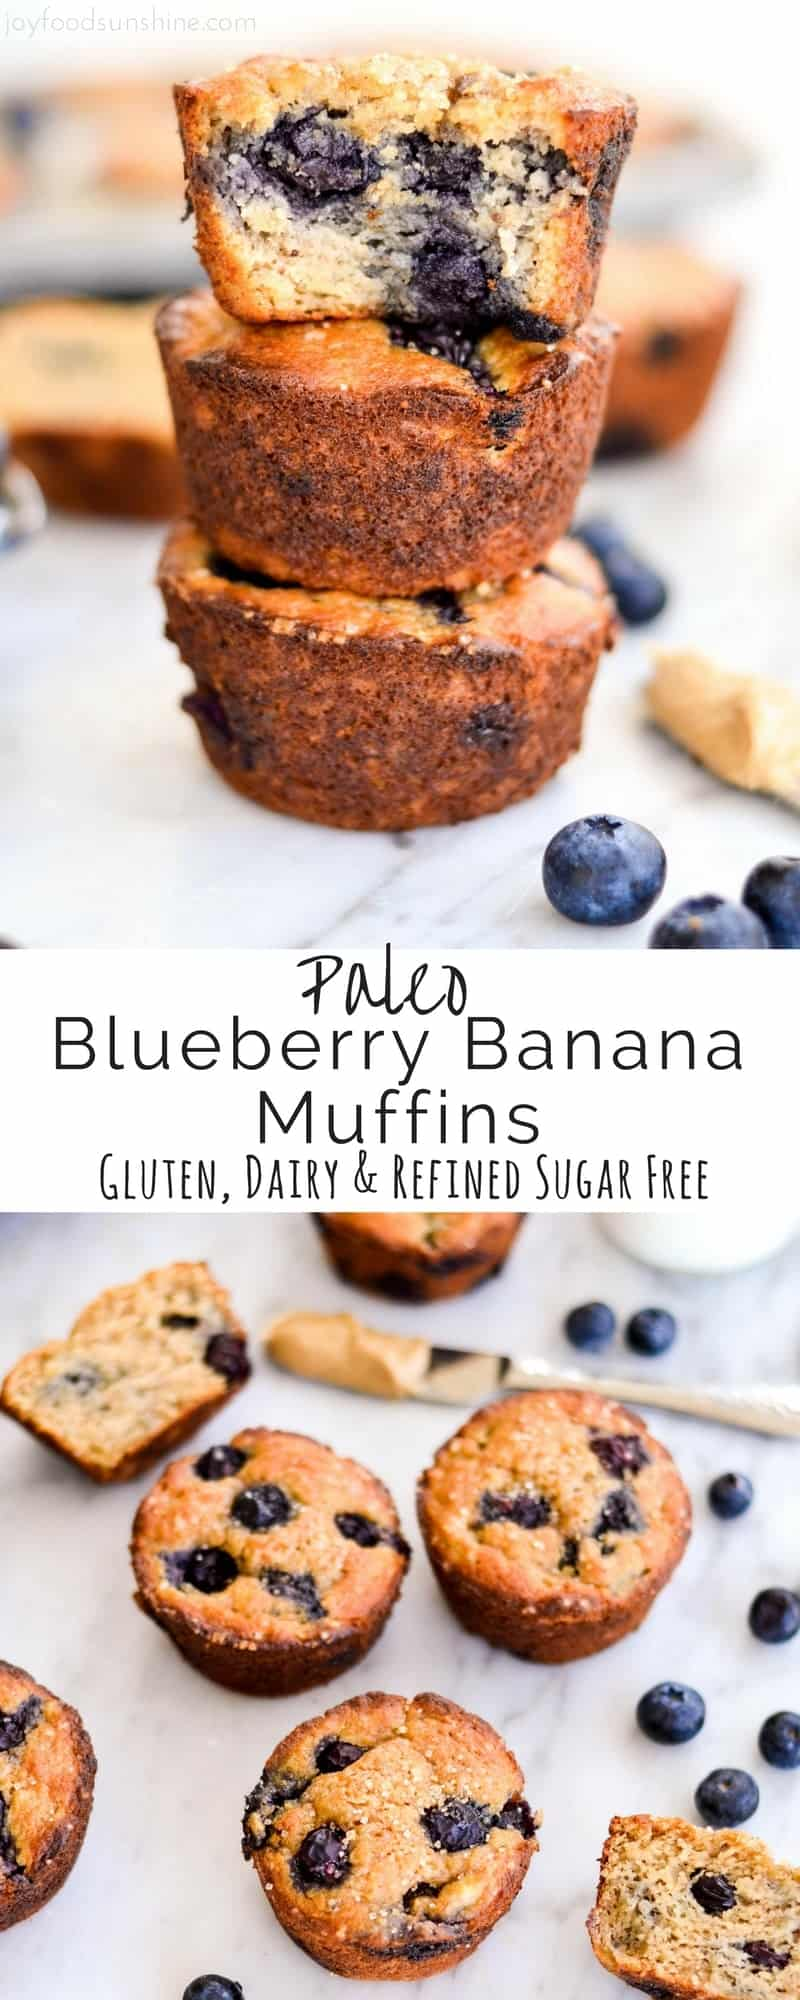 Paleo Blueberry Banana Muffins taste just like a bakery muffin but are healthy! Paleo, gluten-free, dairy-free & refined sugar free! Plus they're freezer-friendly, so they're a perfect make-ahed breakfast!